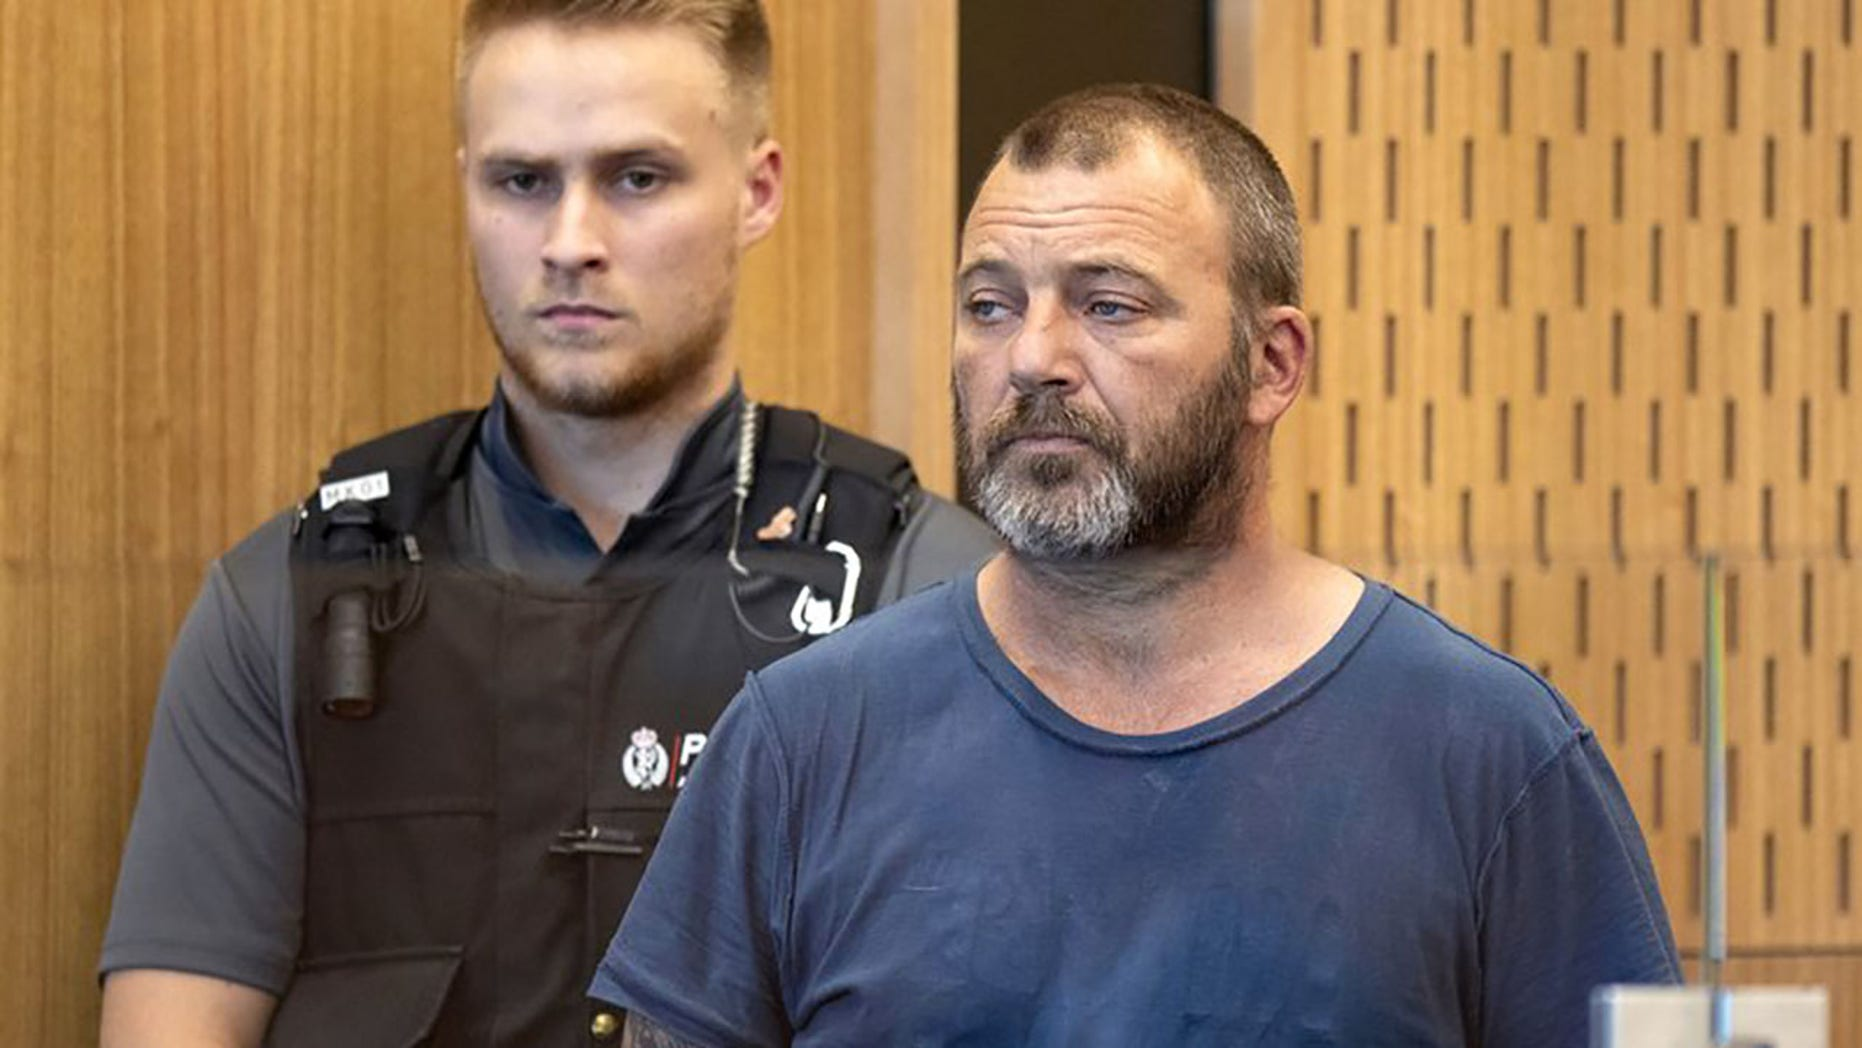 Philip Arps stands in the dock at the District Court in Christchurch, New Zealand on March 20. Arps has pleaded guilty to sharing a livestream video that was recorded by a gunman as he began killing 50 people at two mosques in New Zealand and will remain in jail until he's sentenced on June 14.<br>